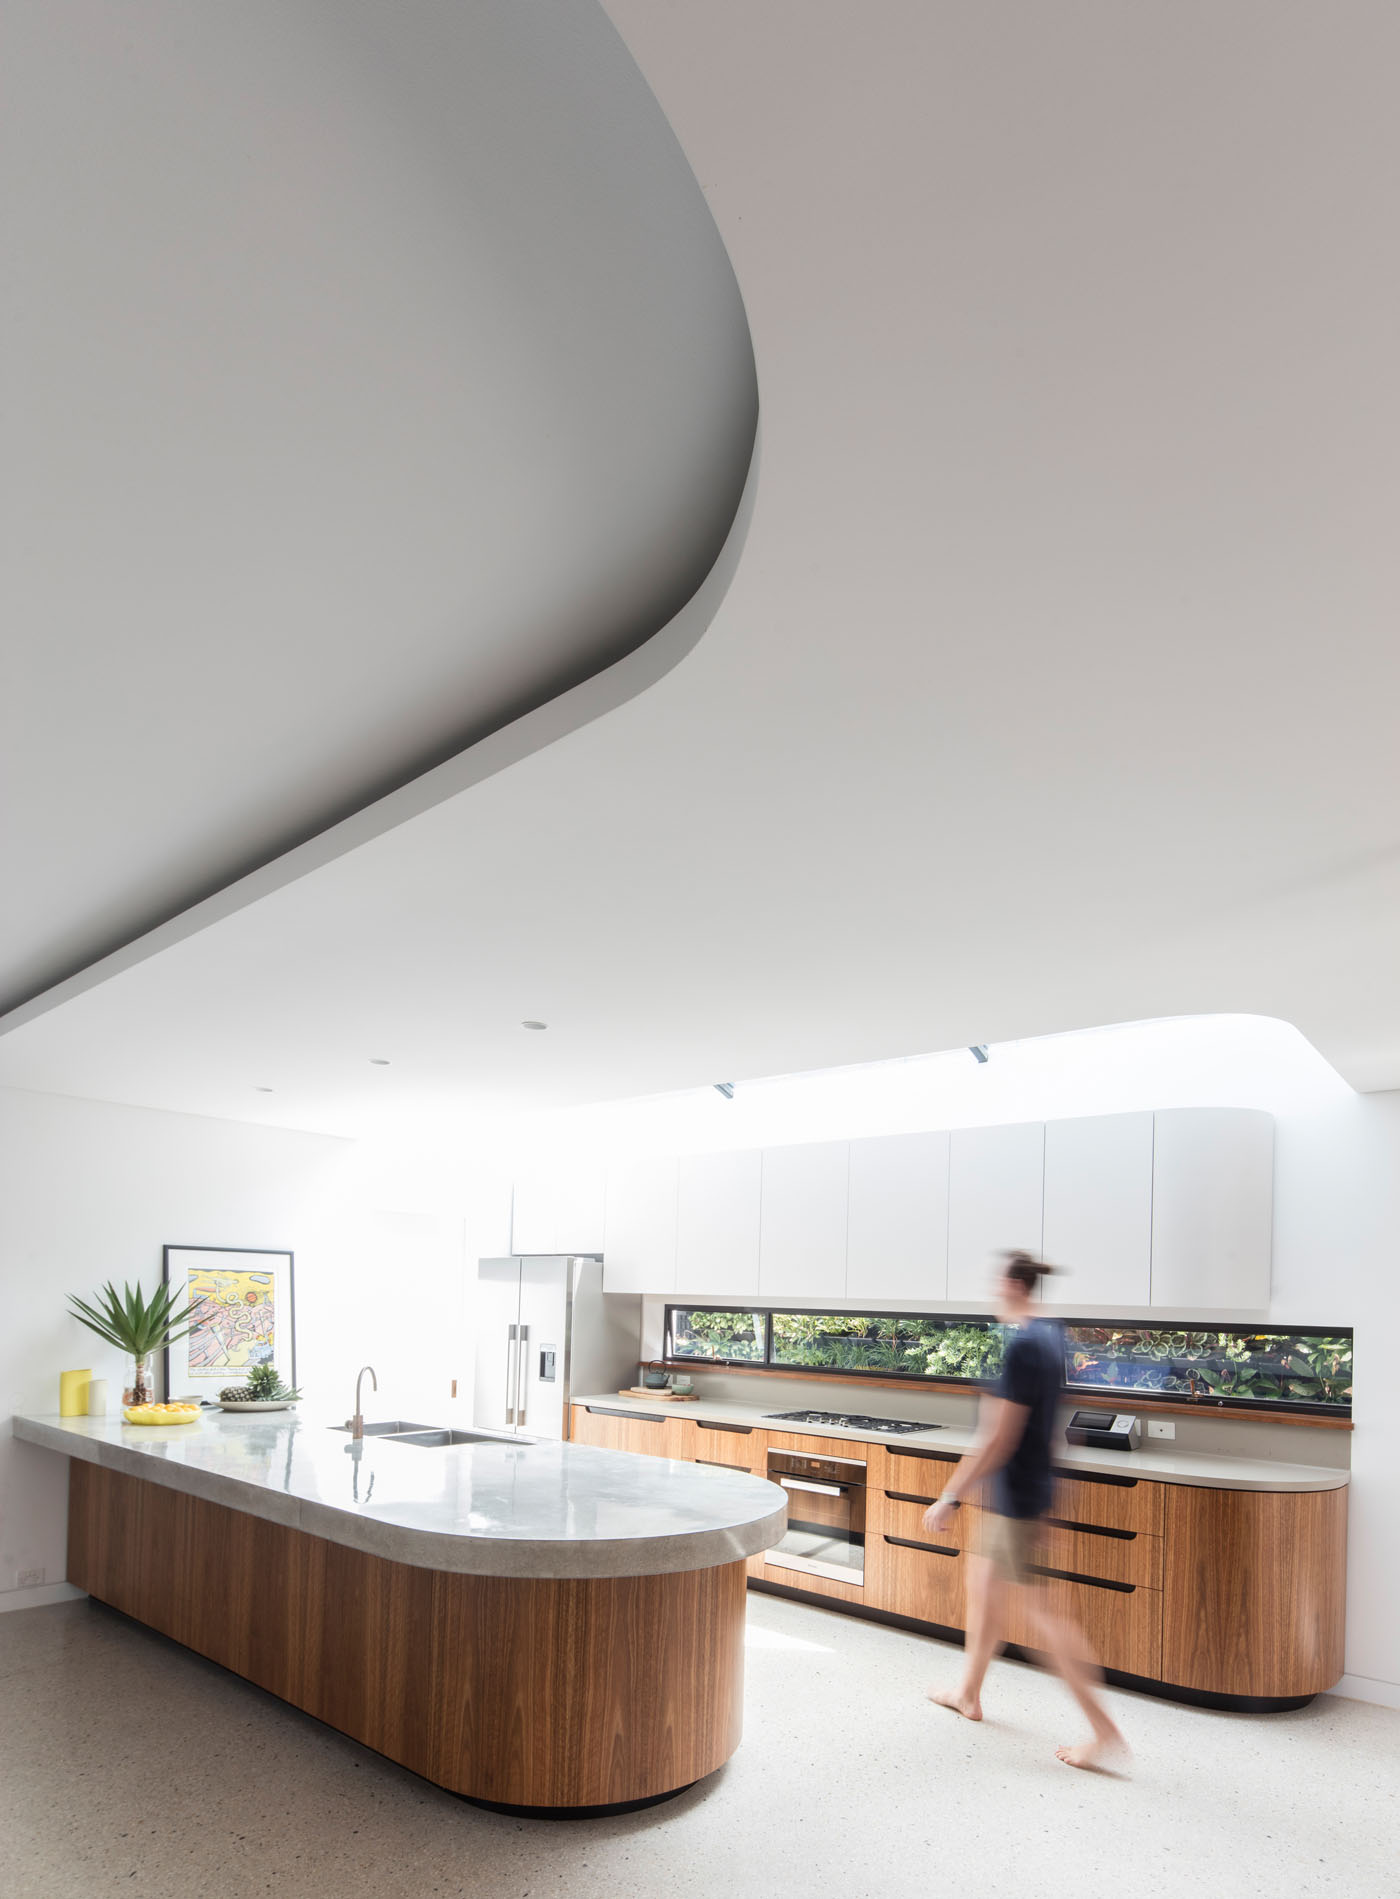 Conway Atkins House in Dover Heights by Sydney architect Sam Crawford Architect. The curves of the joinery and kitchen bench are reflected in the ceiling.